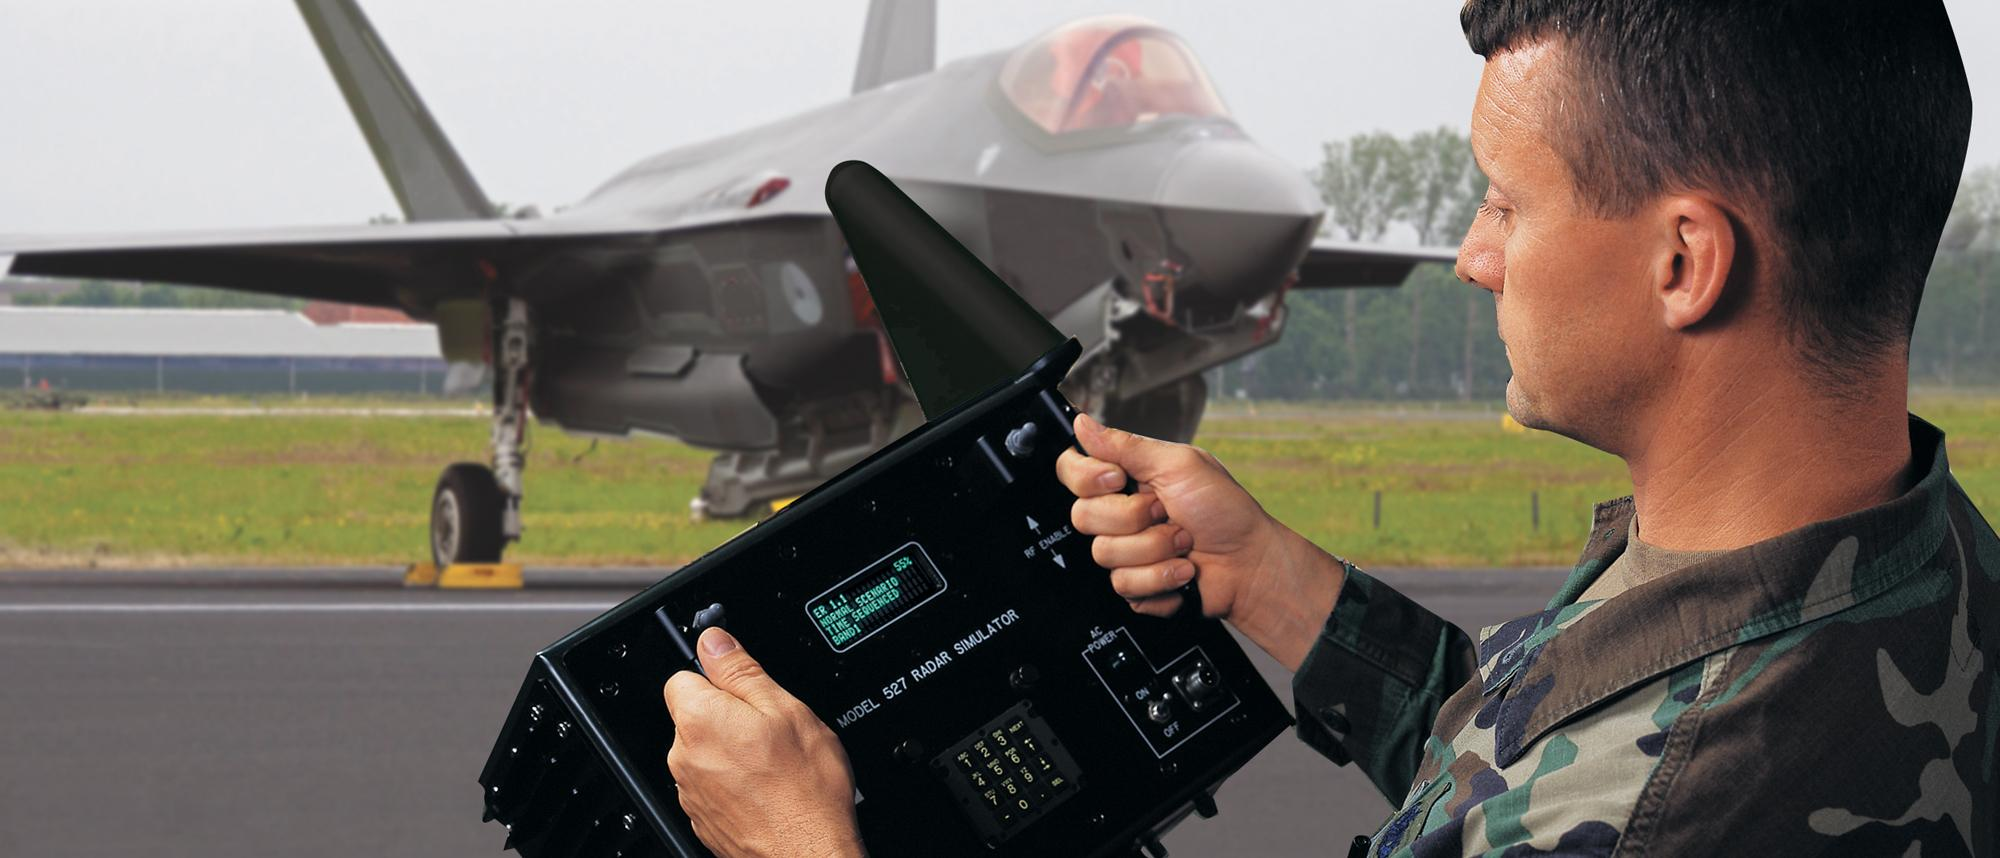 Model 527 being use by a soldier